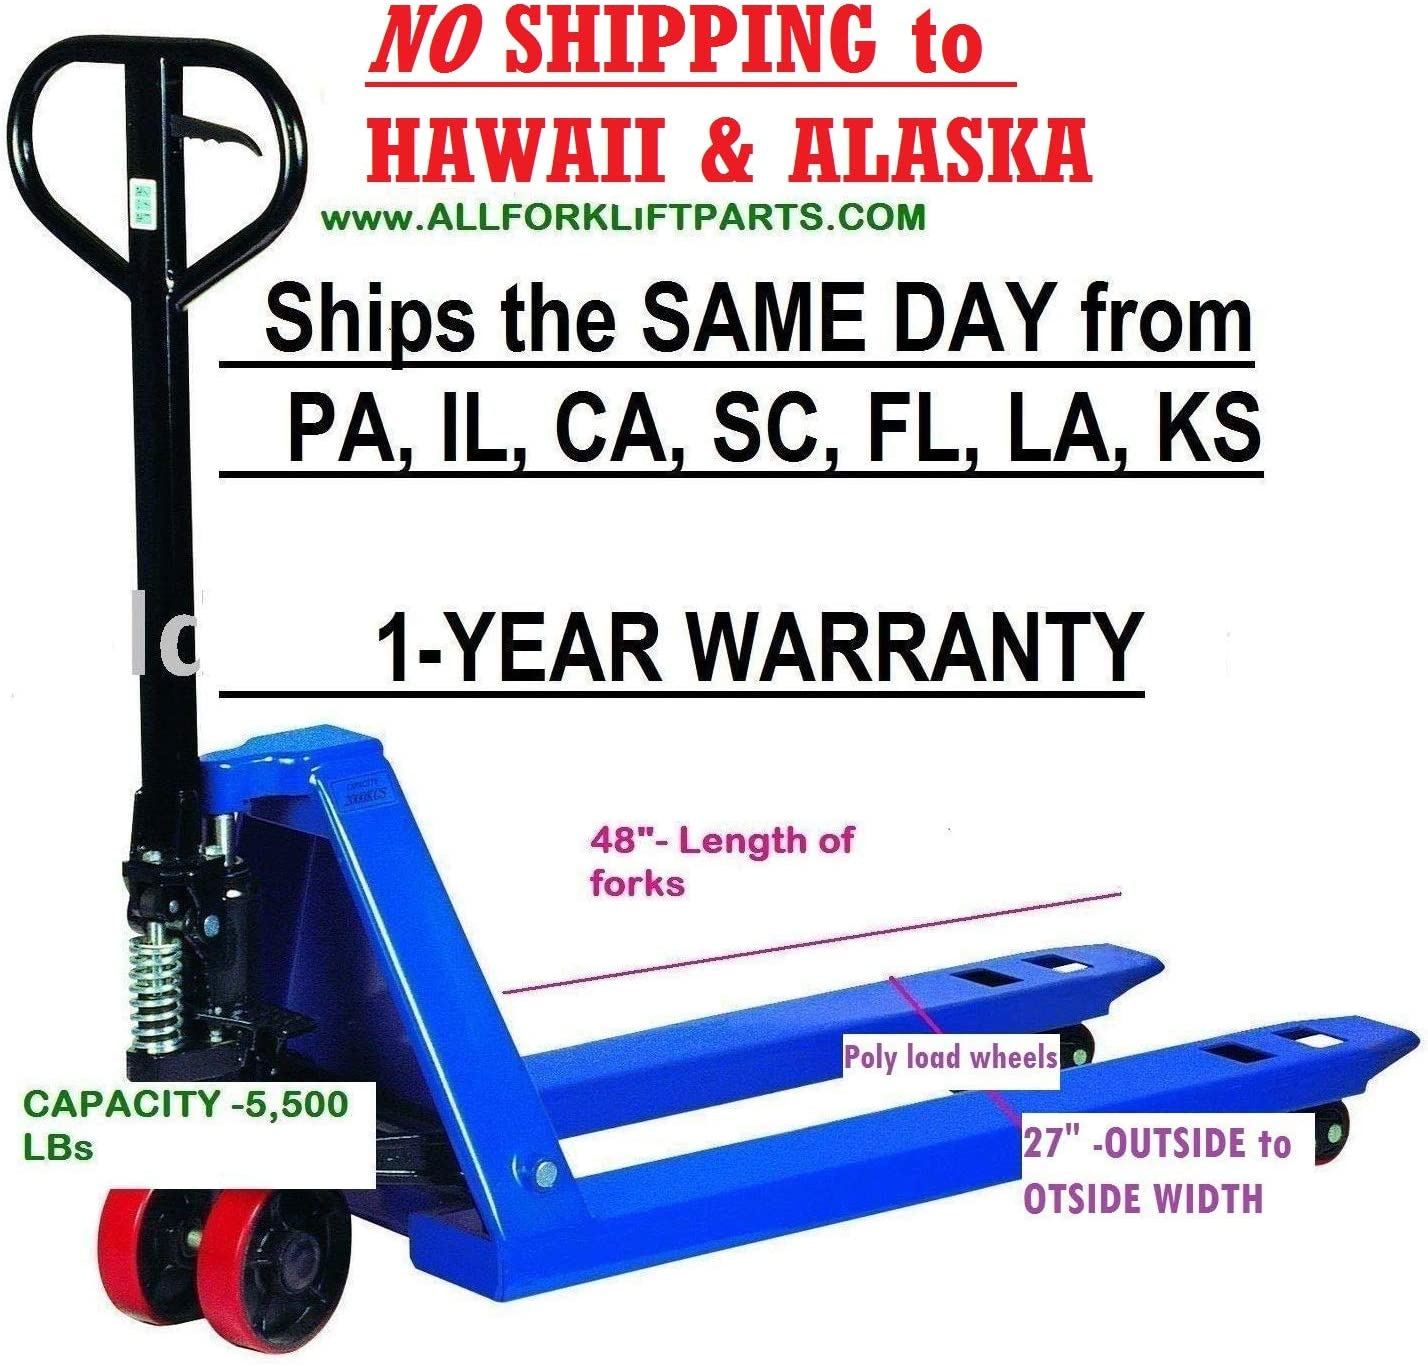 Crown Pallet Jack PTH50-27-48 Hand Truck 5000lb Capacity Good Working Condition